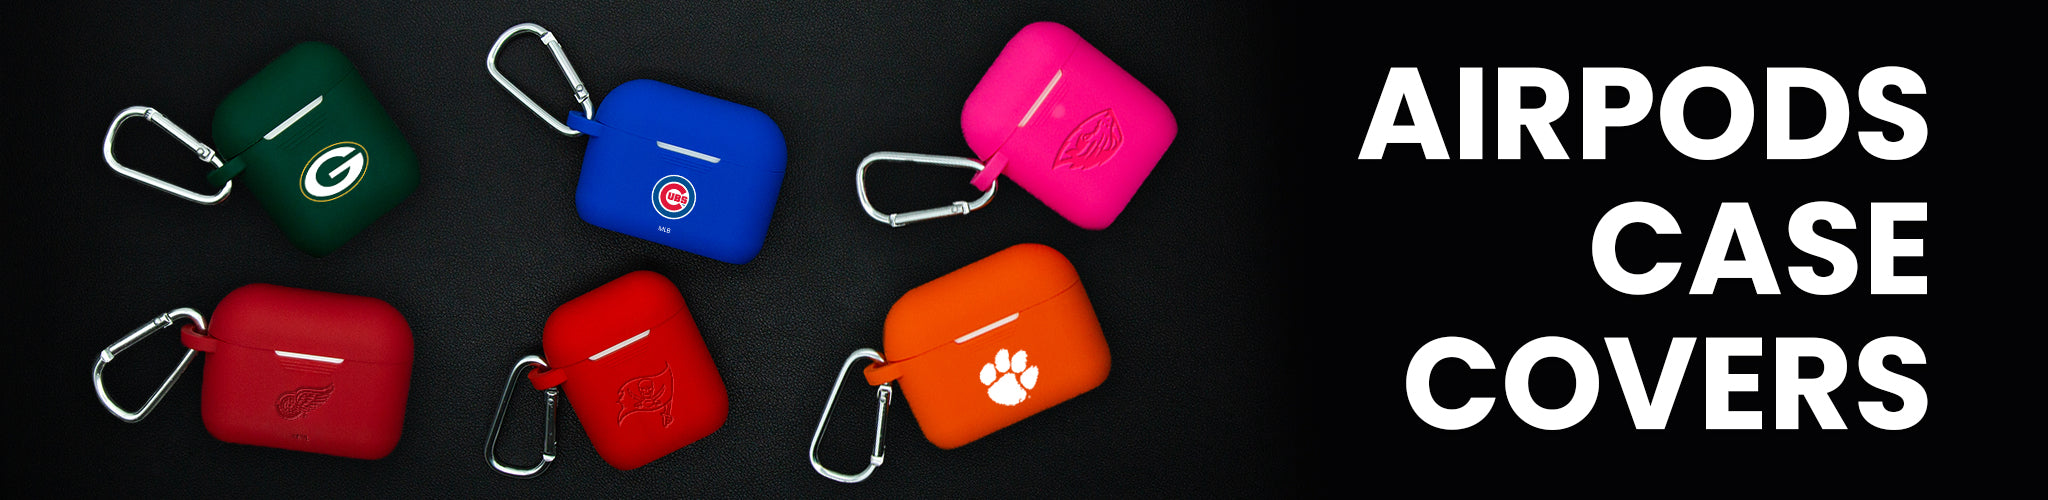 AirPods Case Covers